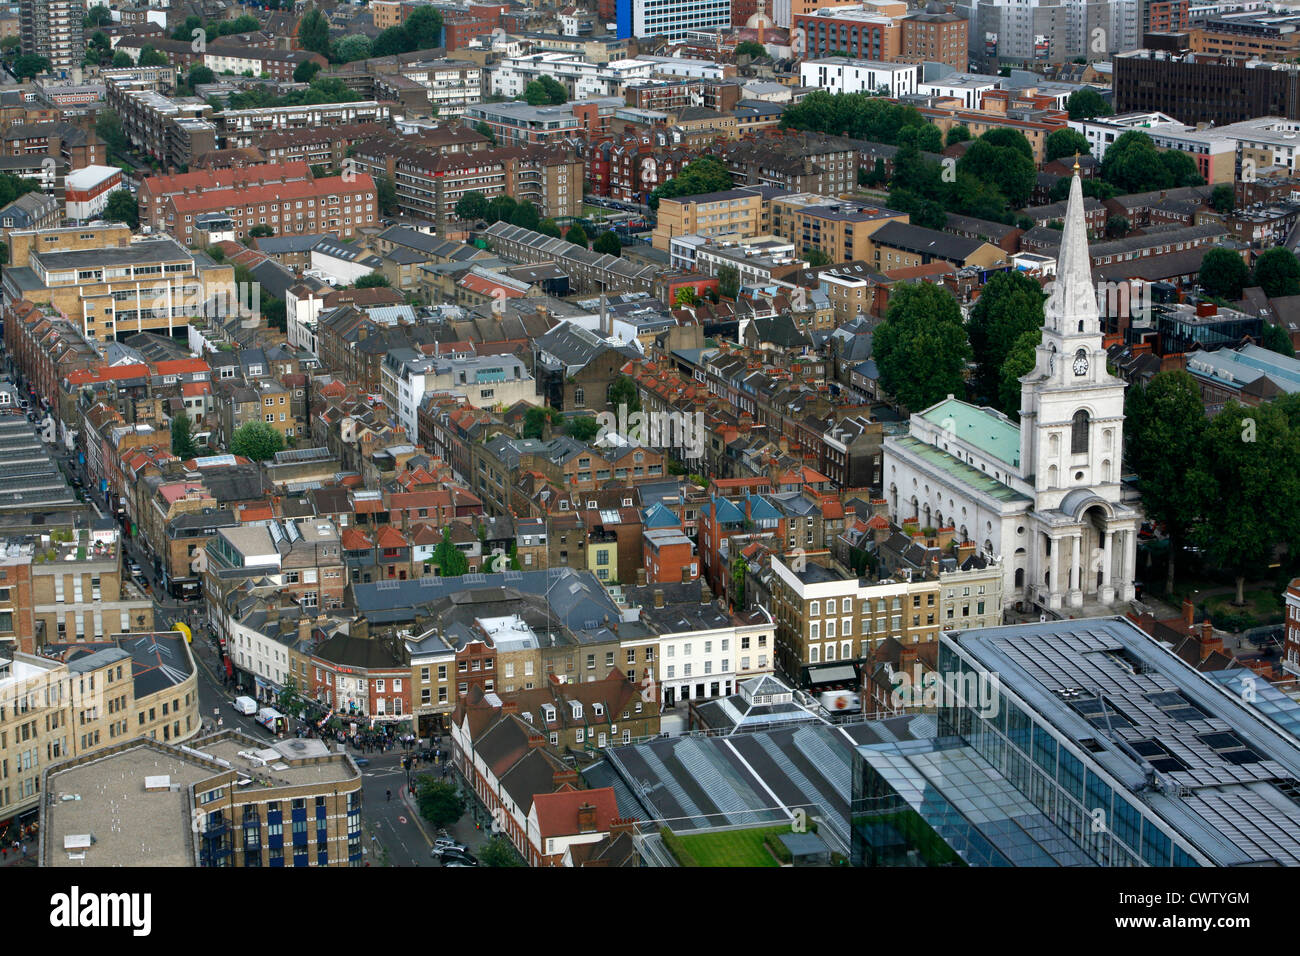 Elevated view looking down on to Christ Church, Spitalfields, London, UK Stock Photo